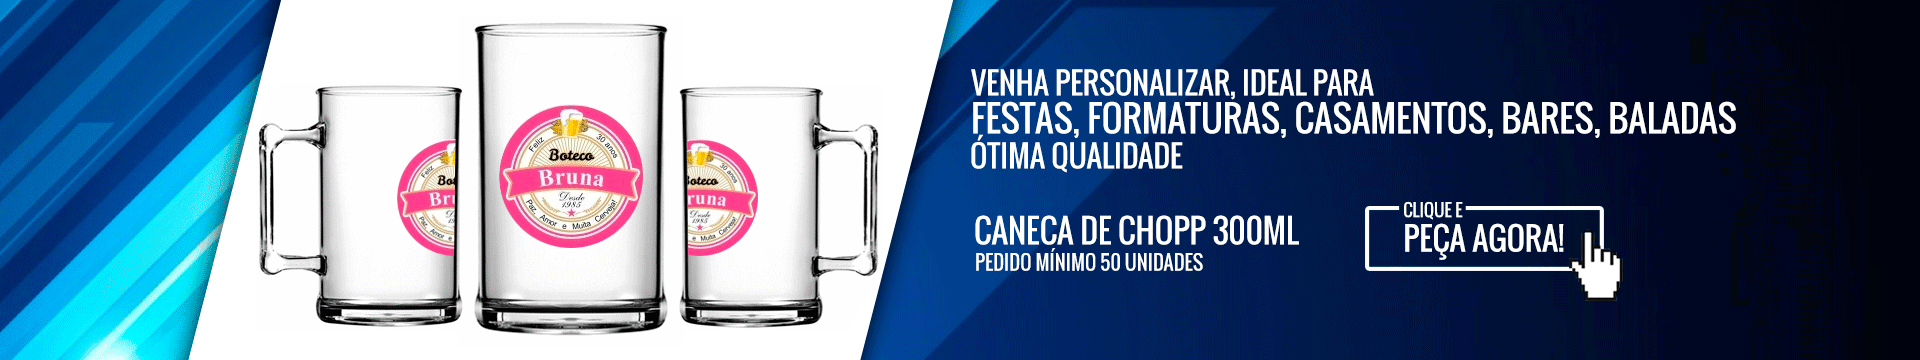 Full Banner Caneca de chopp de 300 ml